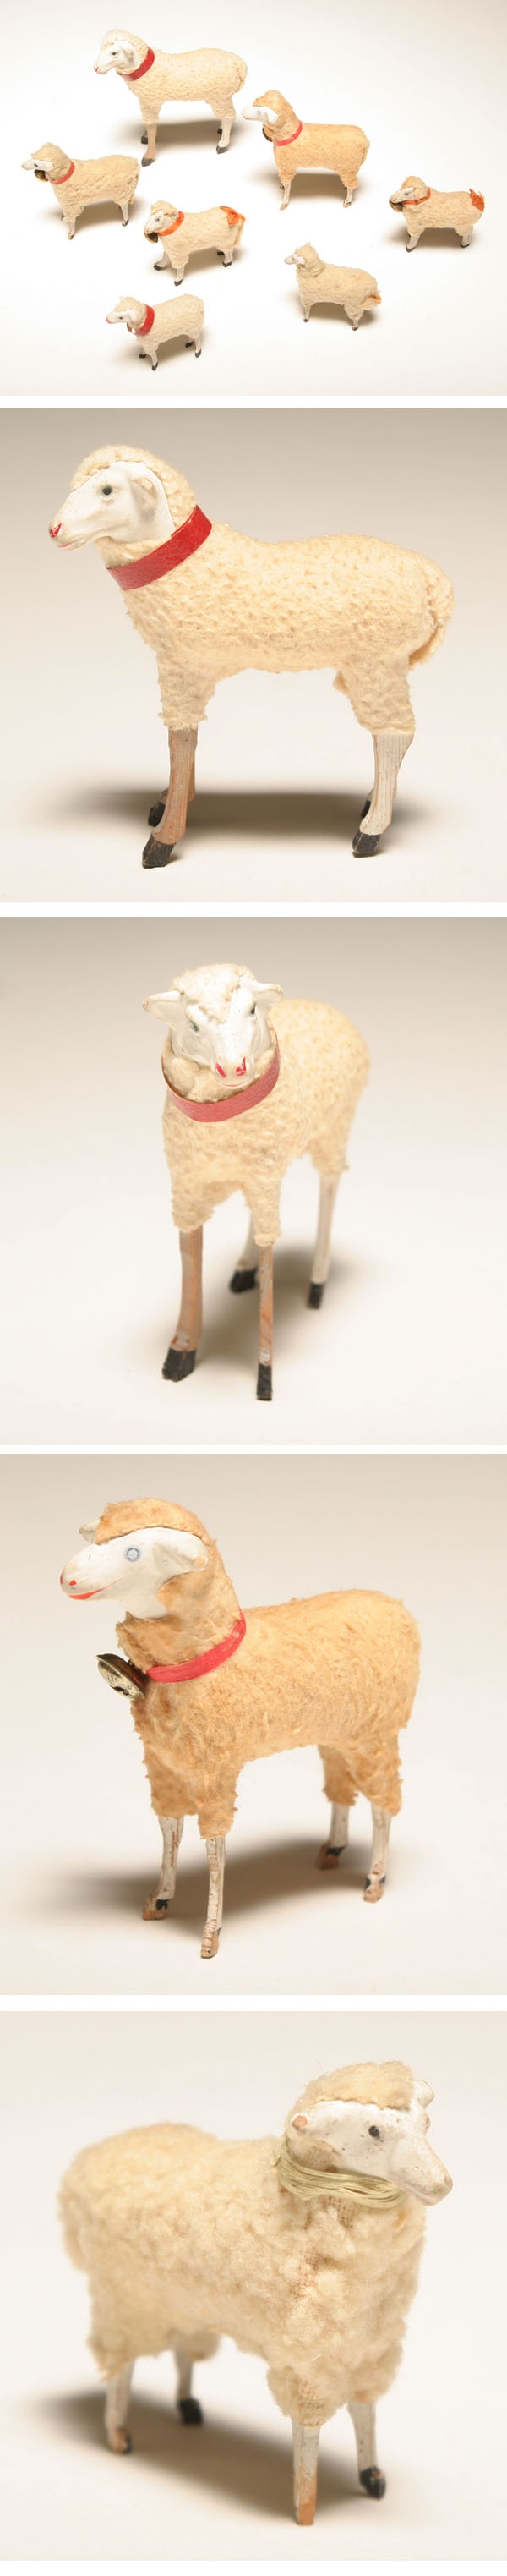 Antique Putz Sheep. Repinned by www.mygrowingtraditions.com